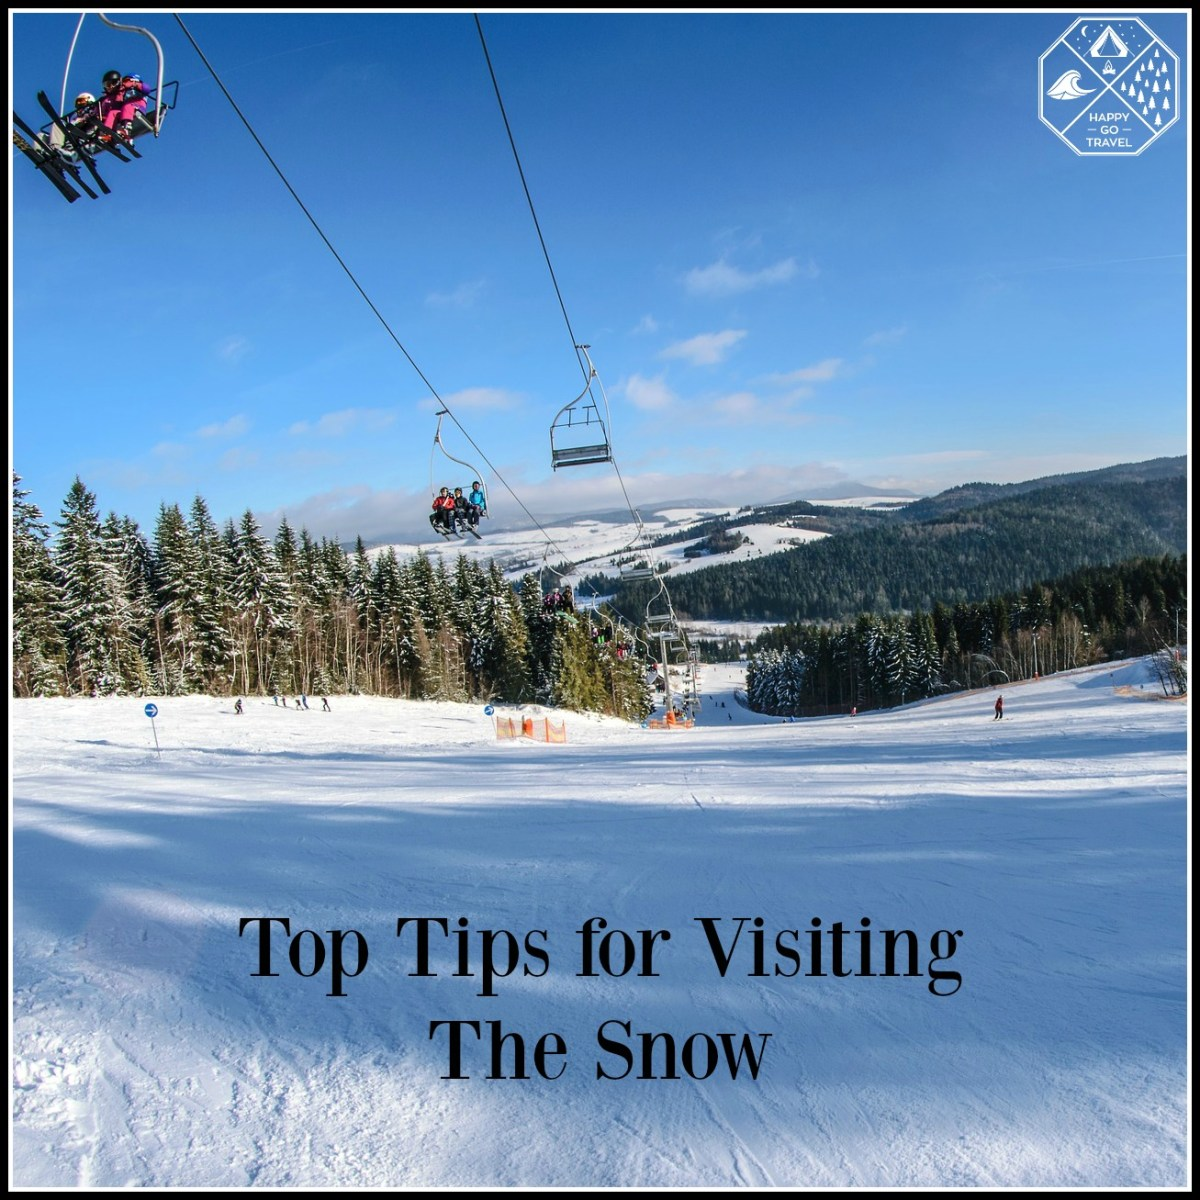 Top Tips for Visiting The Snow